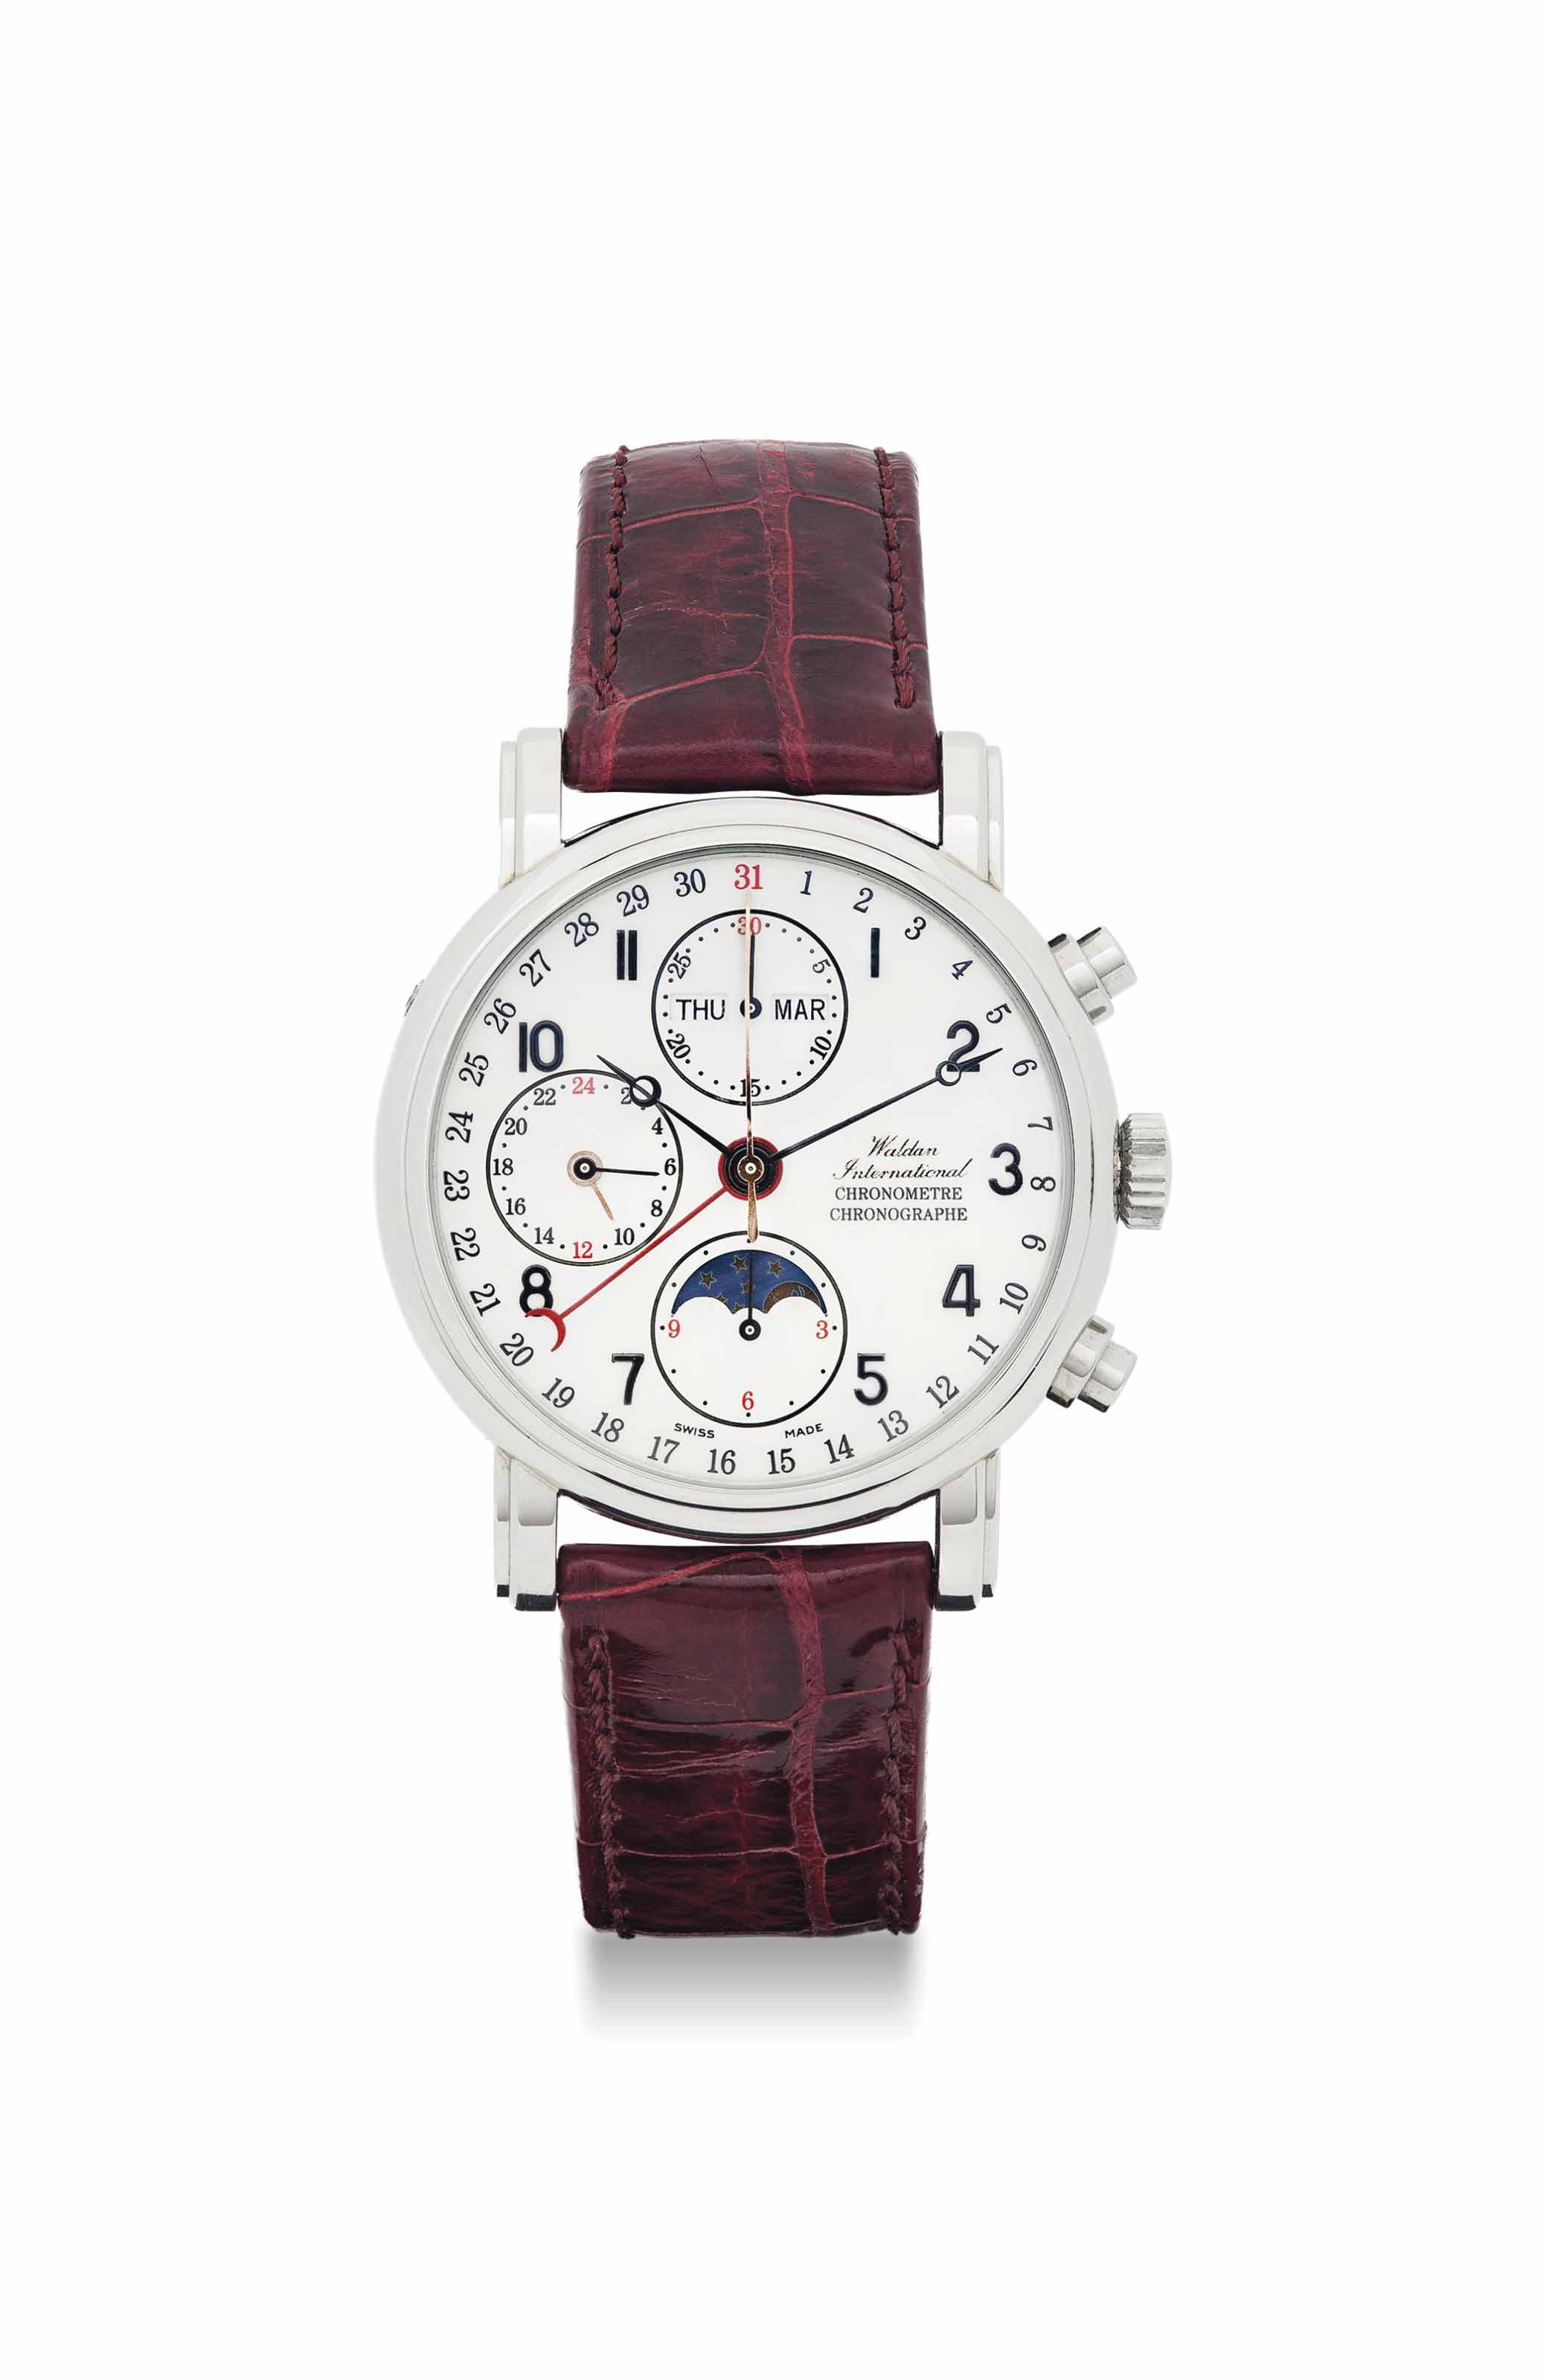 WALDAN INTERNATIONAL. A PLATINUM AUTOMATIC TRIPLE CALENDAR CHRONOGRAPH WRISTWATCH WITH MOON PHASES